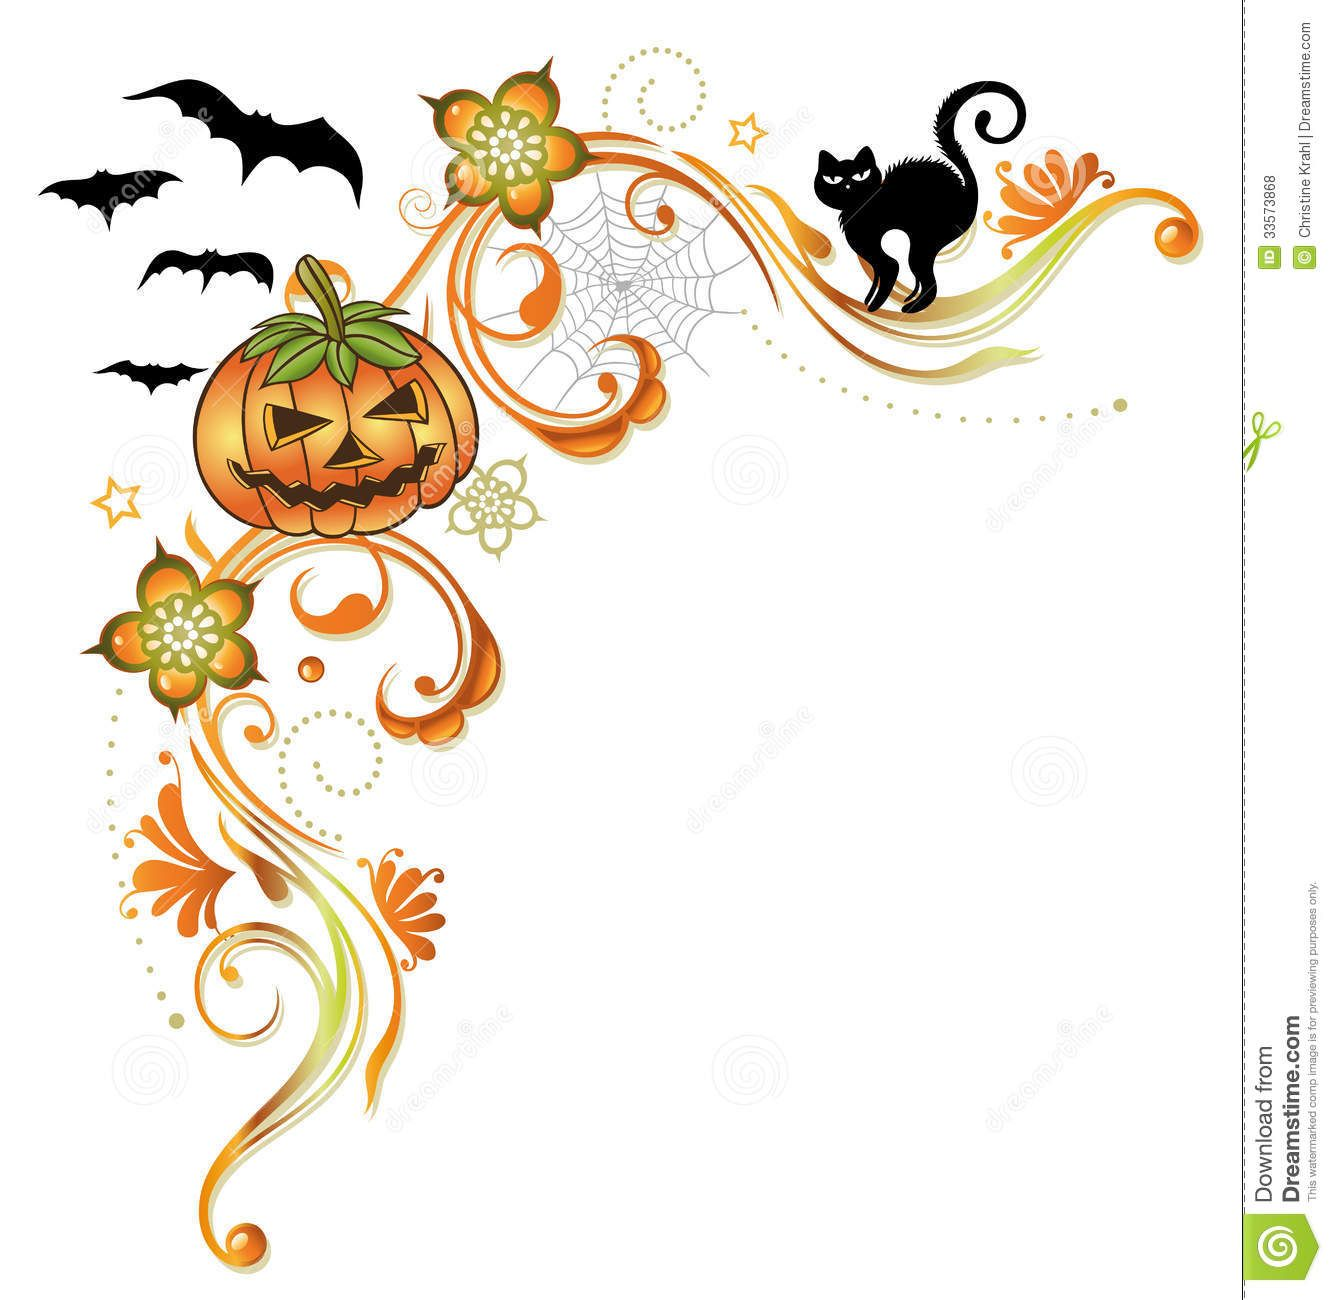 free halloween clip art halloween borders pumpkins halloween border rh pinterest ca halloween border clip art free